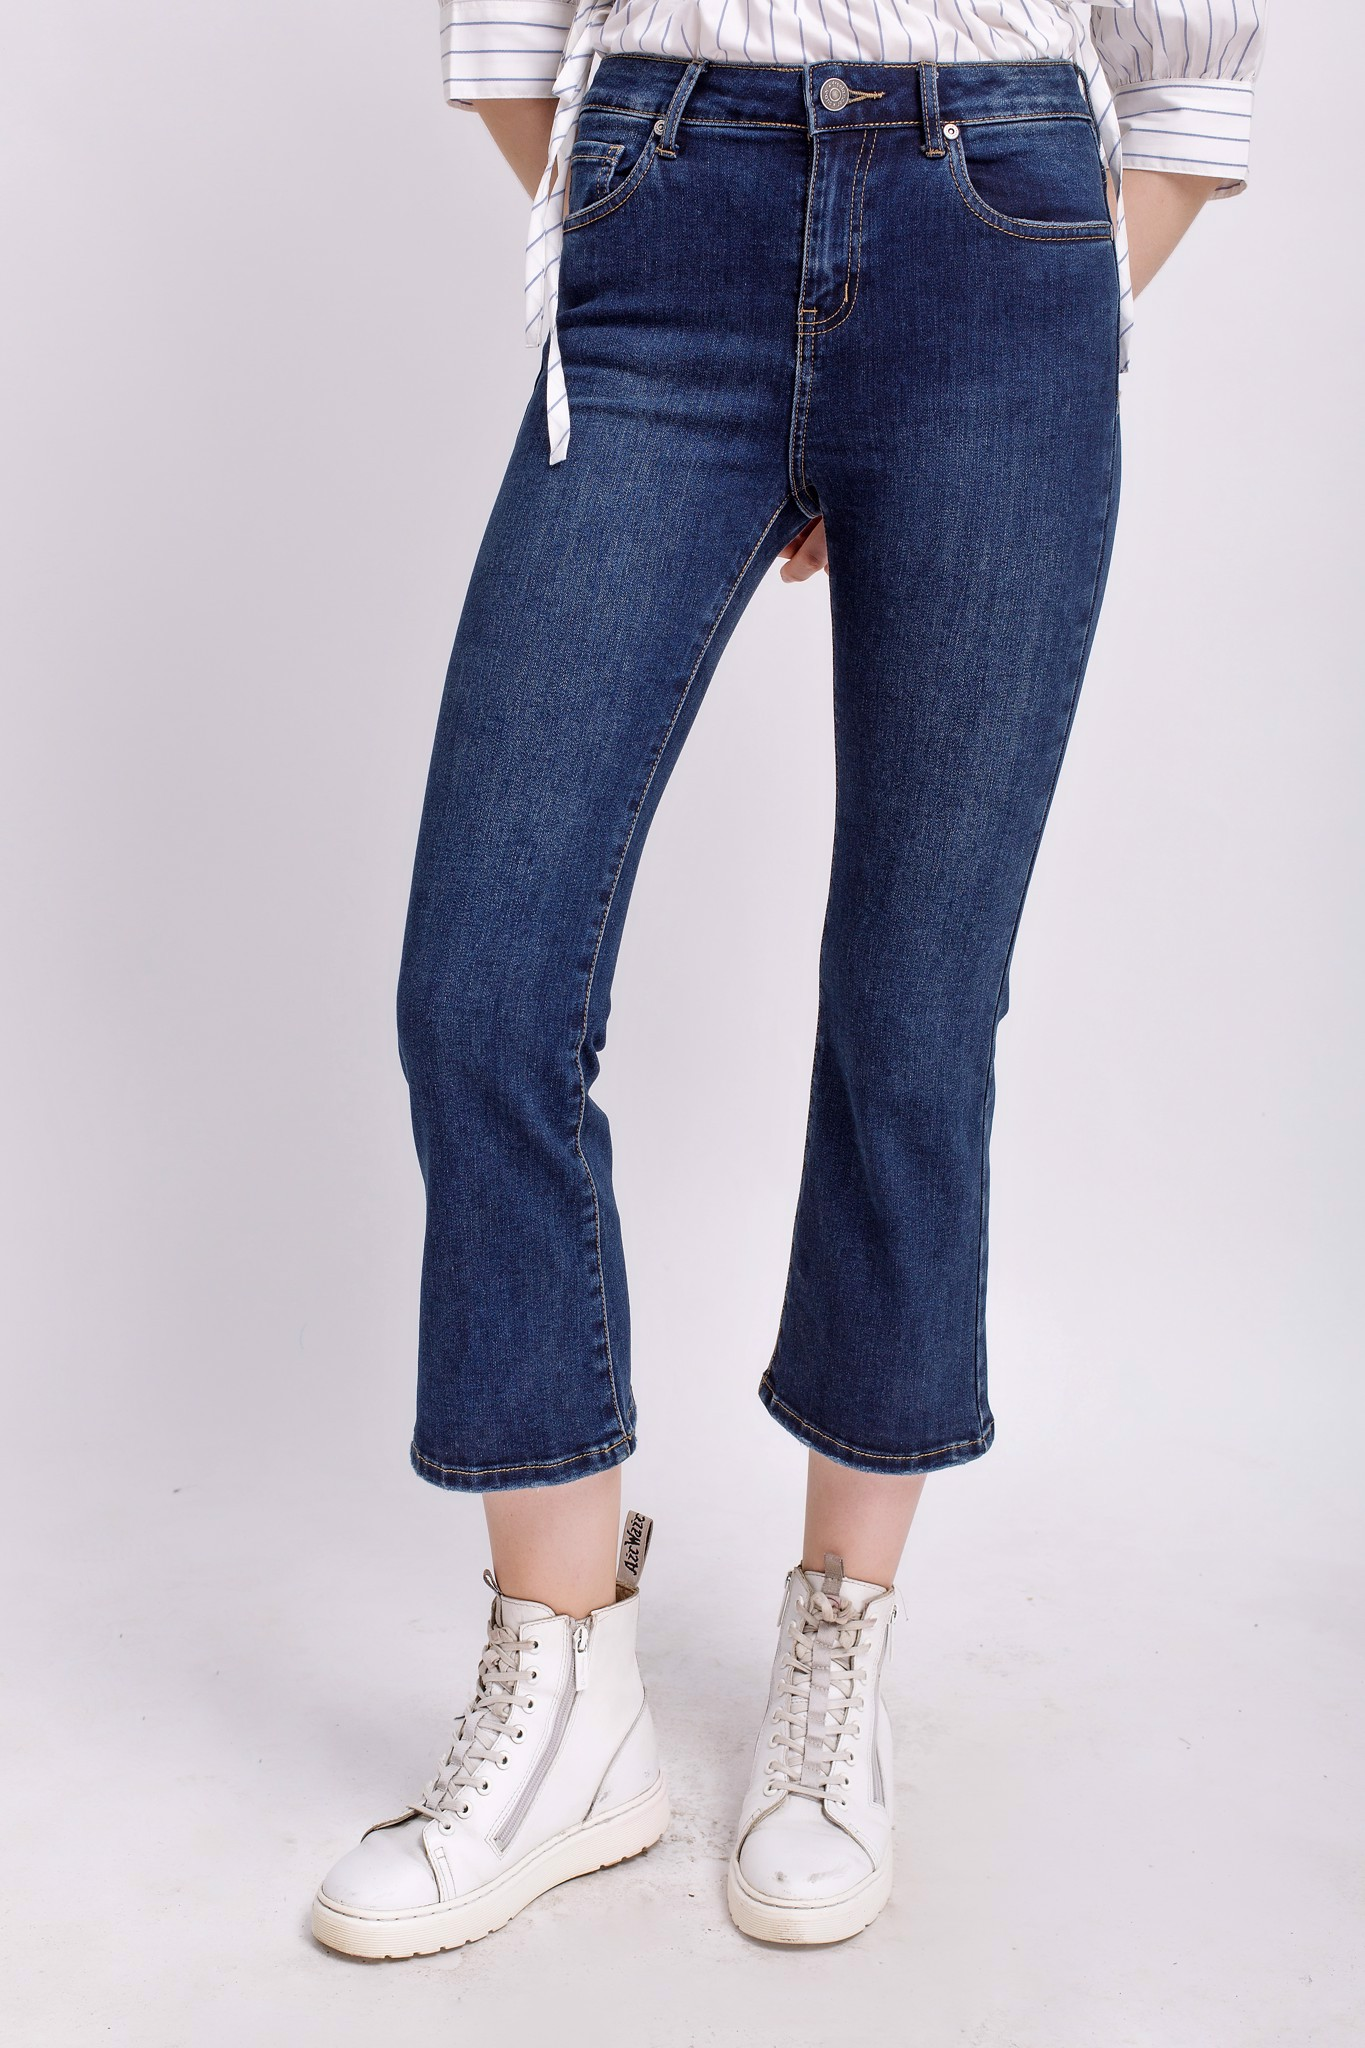 Quần jeans nữ FWJN20S012-S3